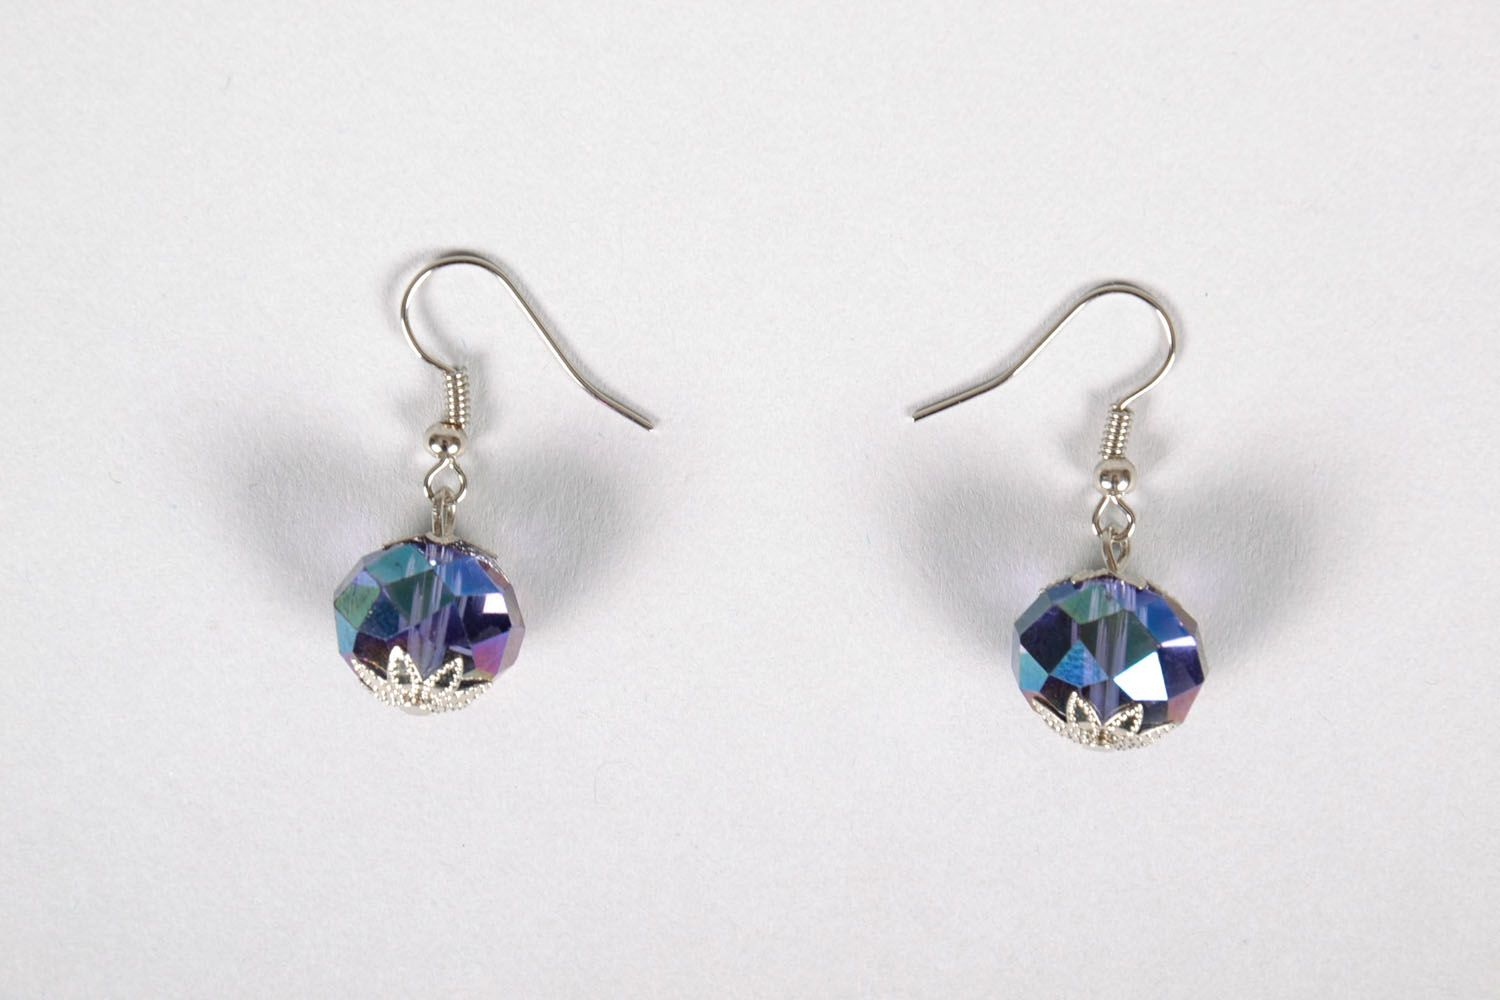 Earrings made of beads photo 2